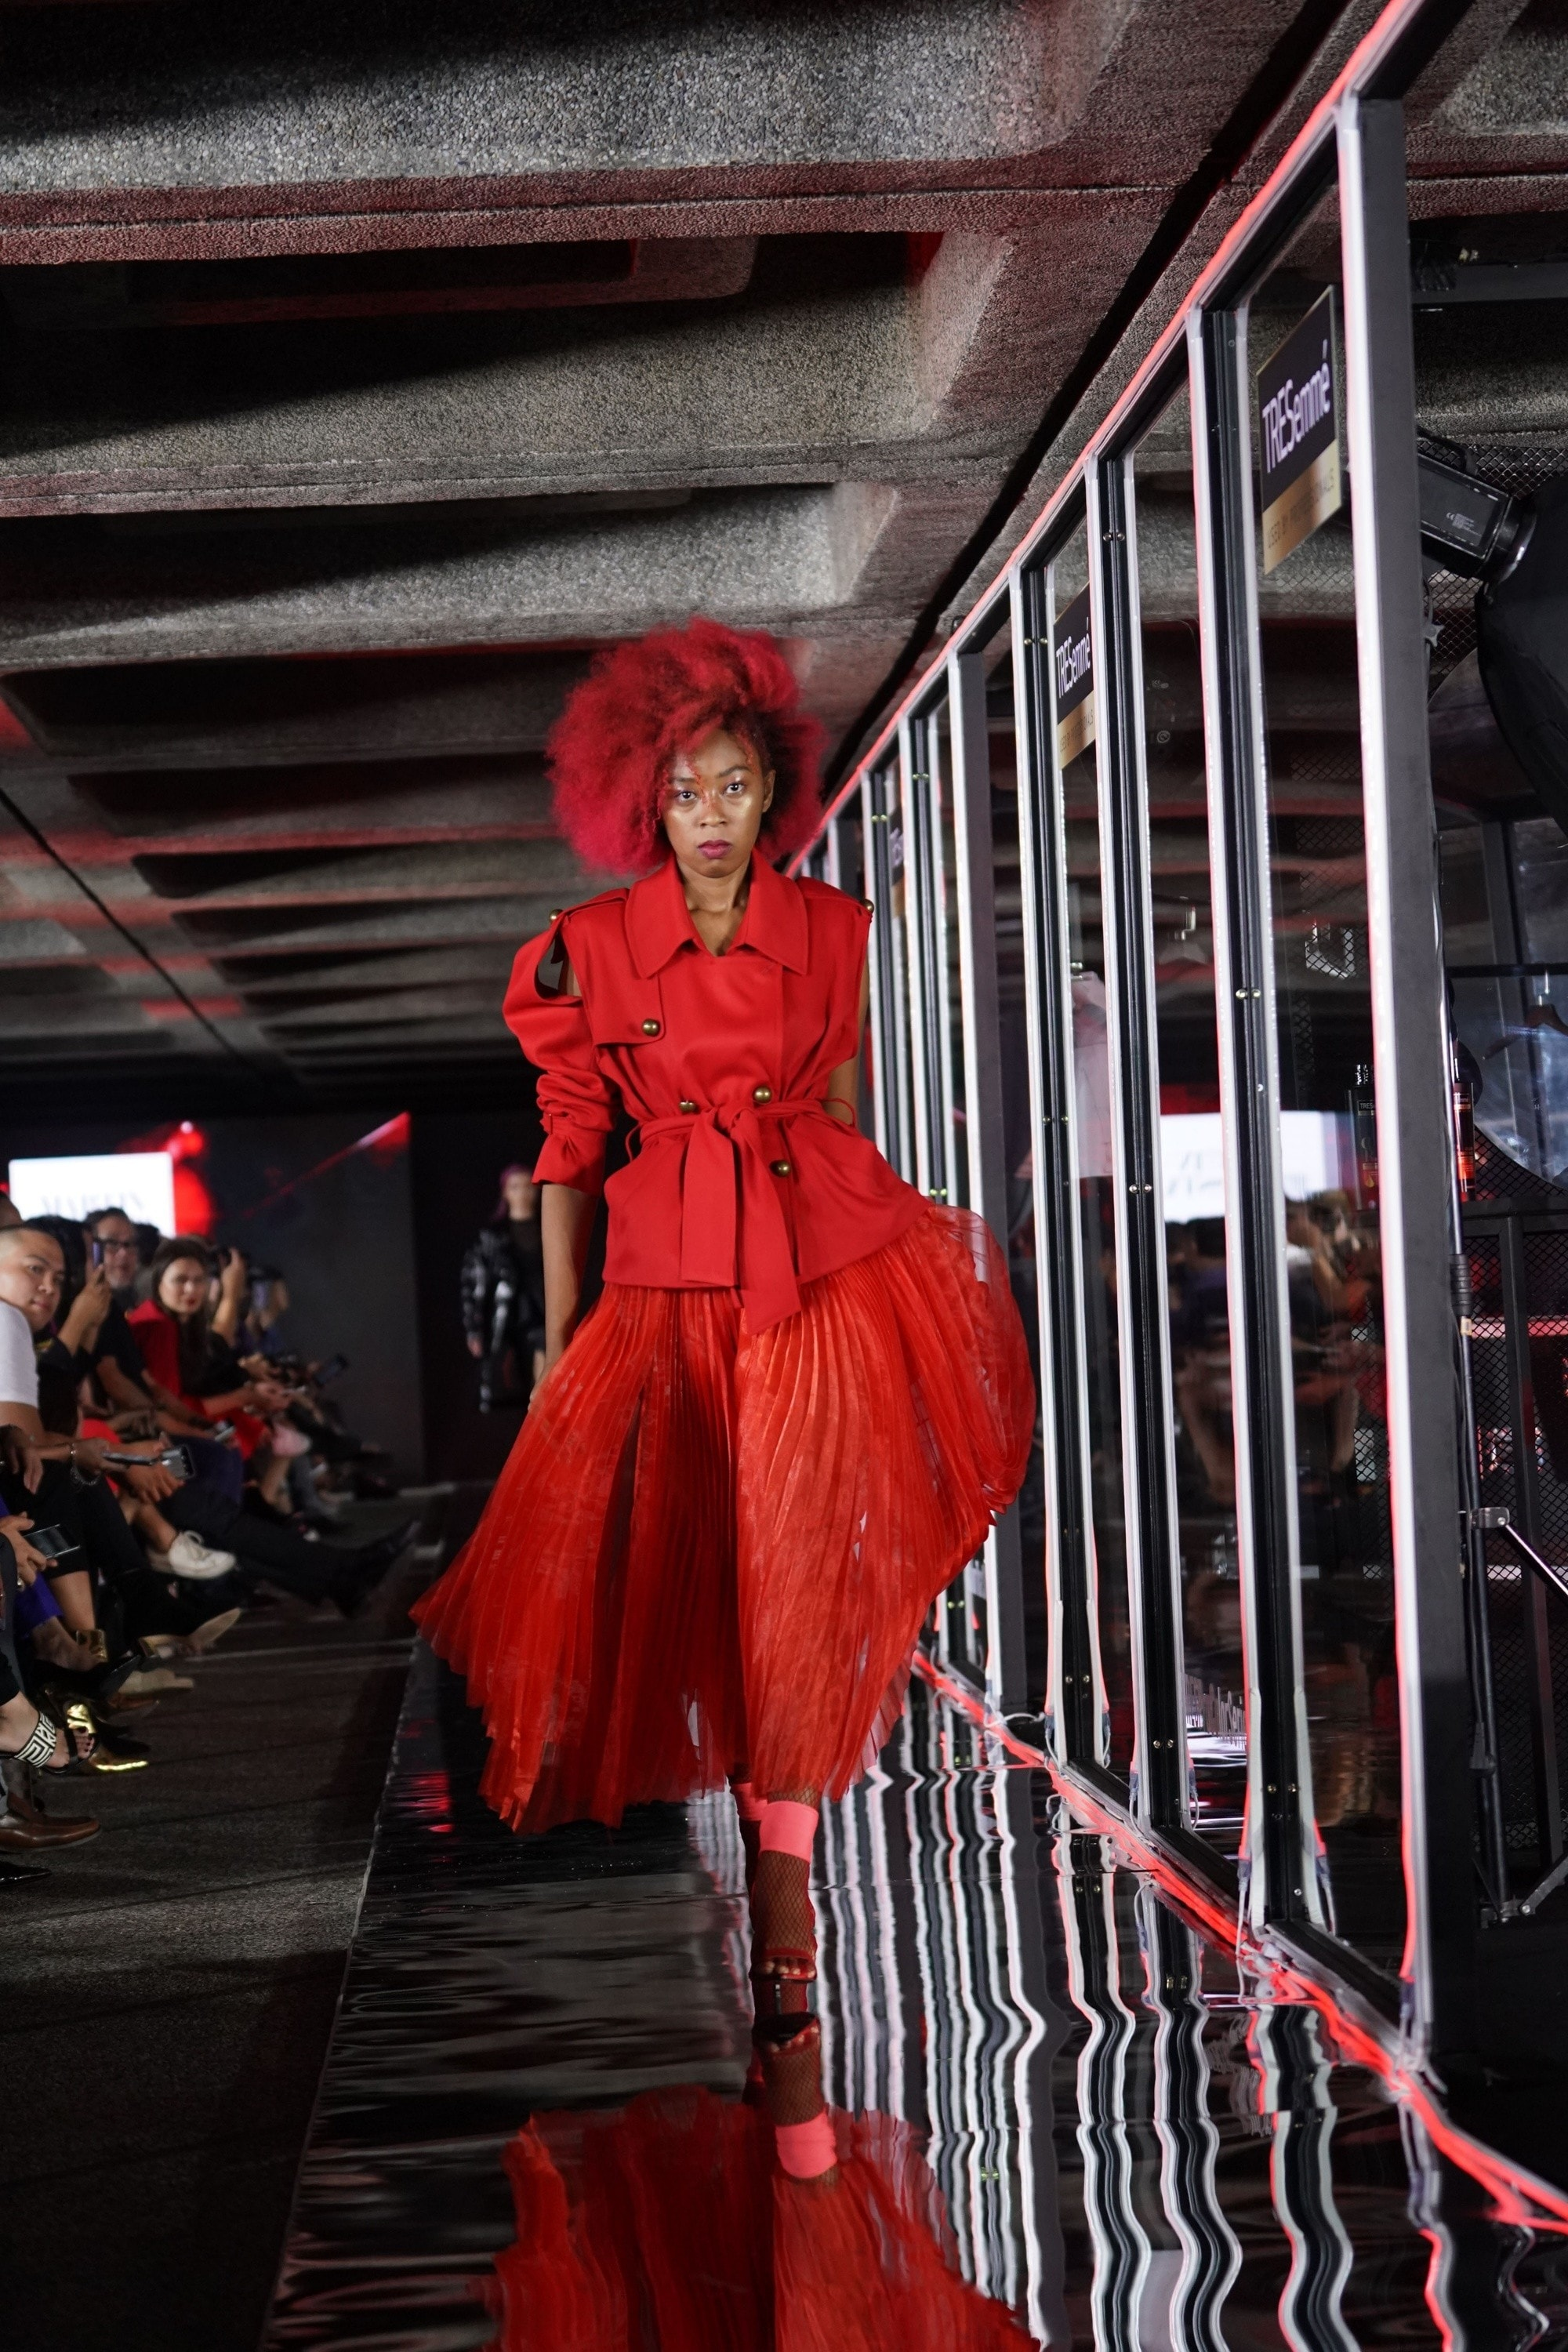 A model with big red hair wearing a red top and skirt